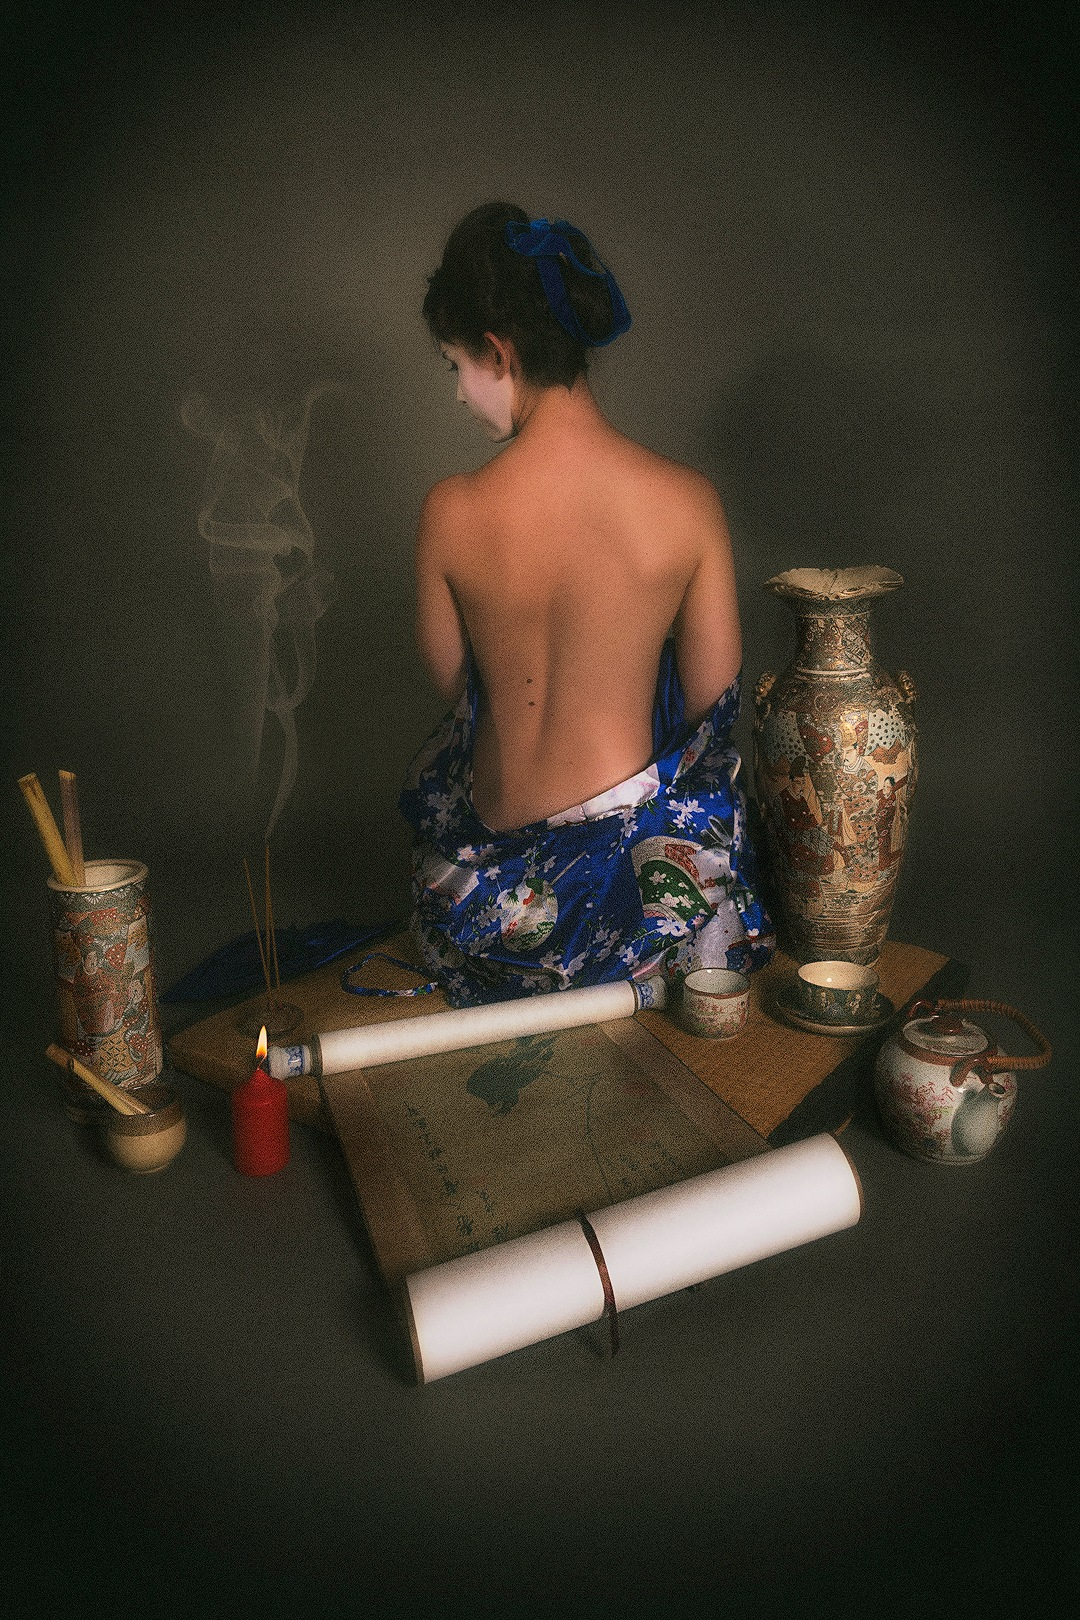 Japanese traditions by Pagniez Jean-philippe